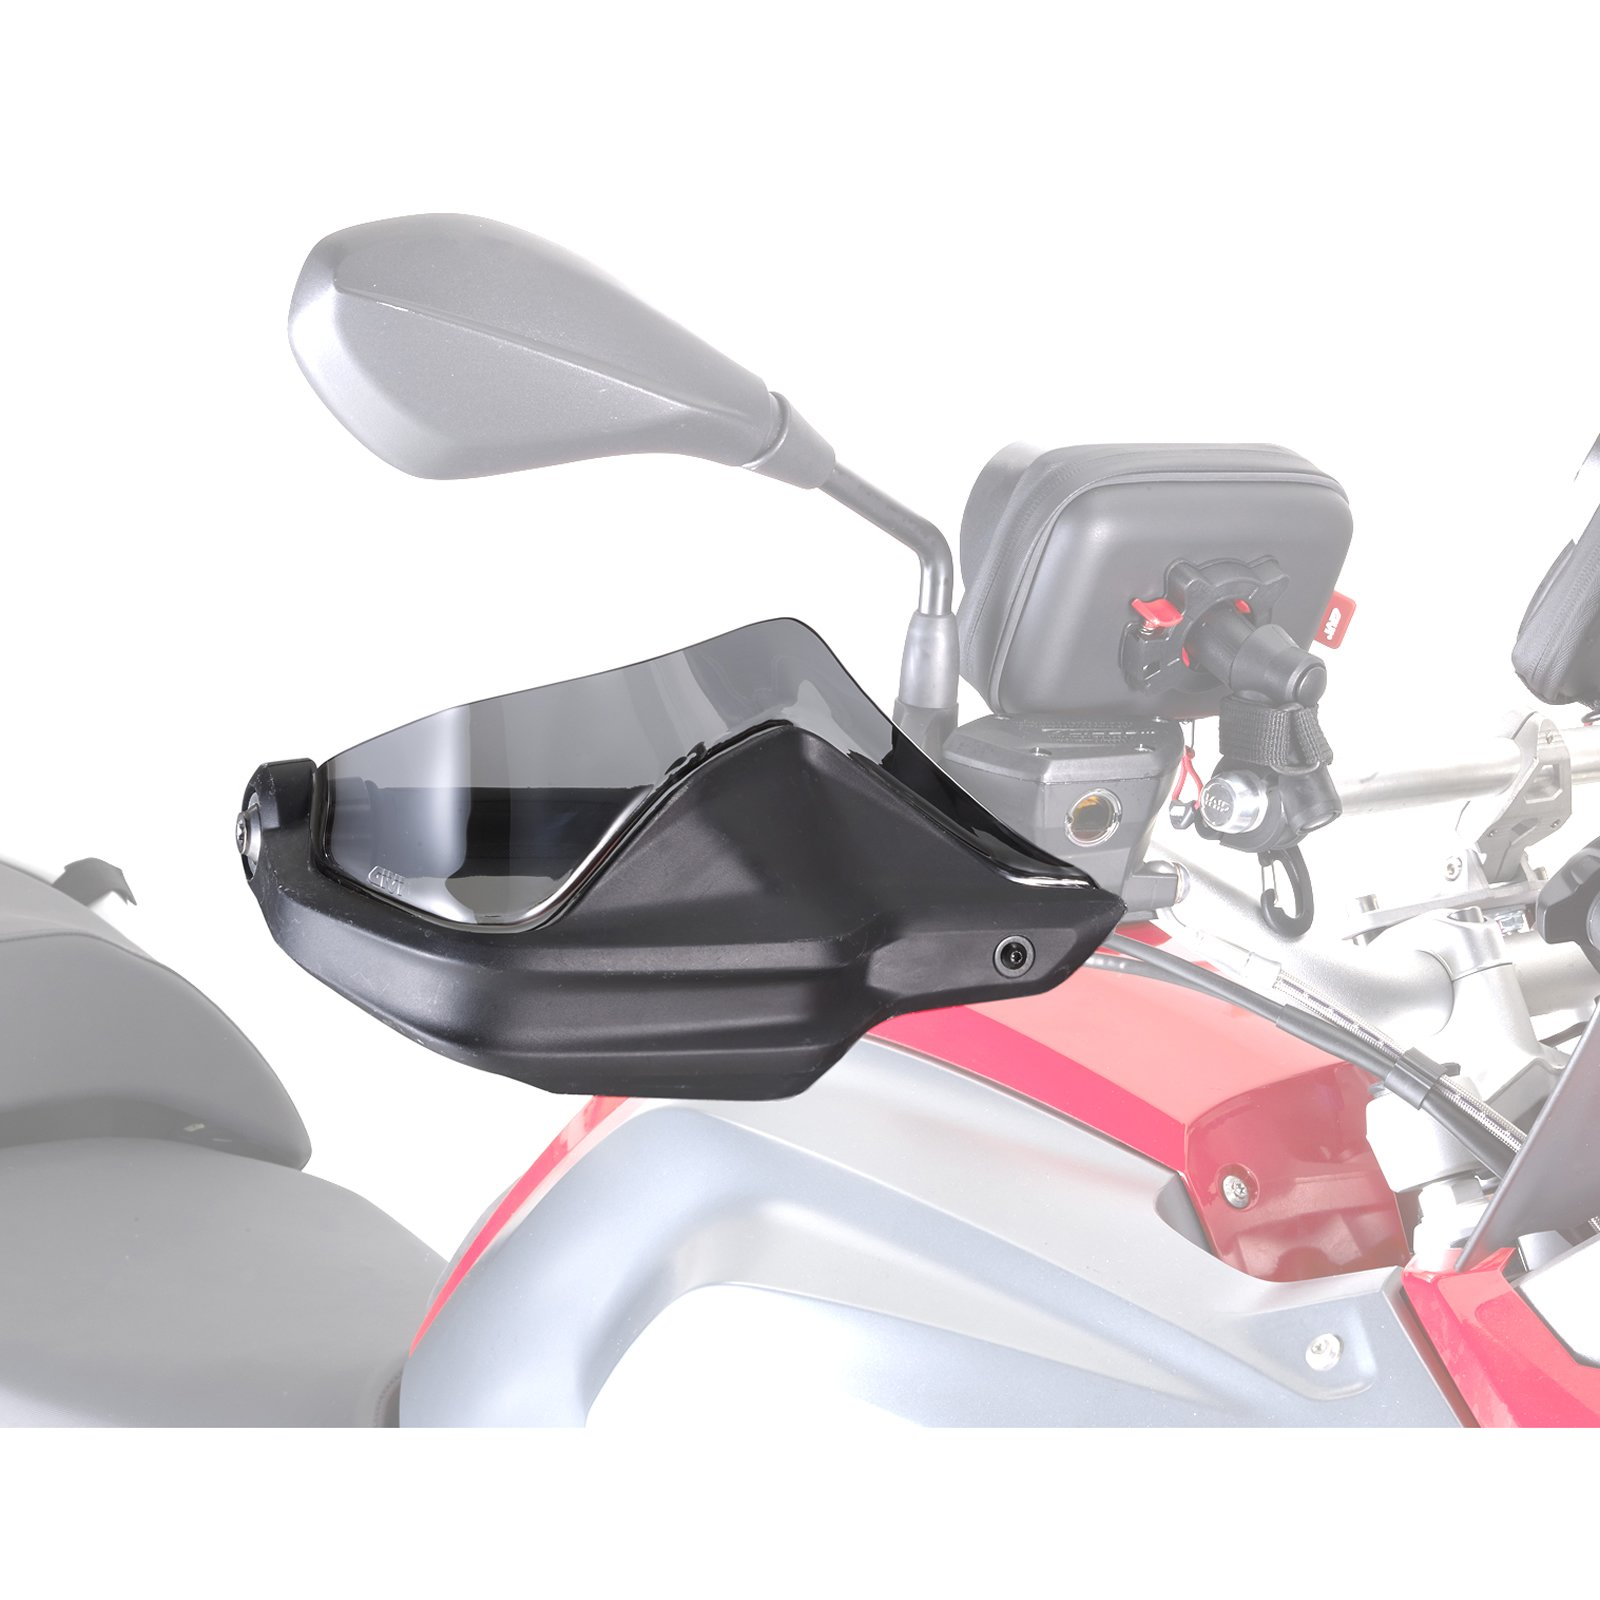 BMW Genuine F800GS F650GS Motorcycle Spoiler Attachment for Hand Protectors